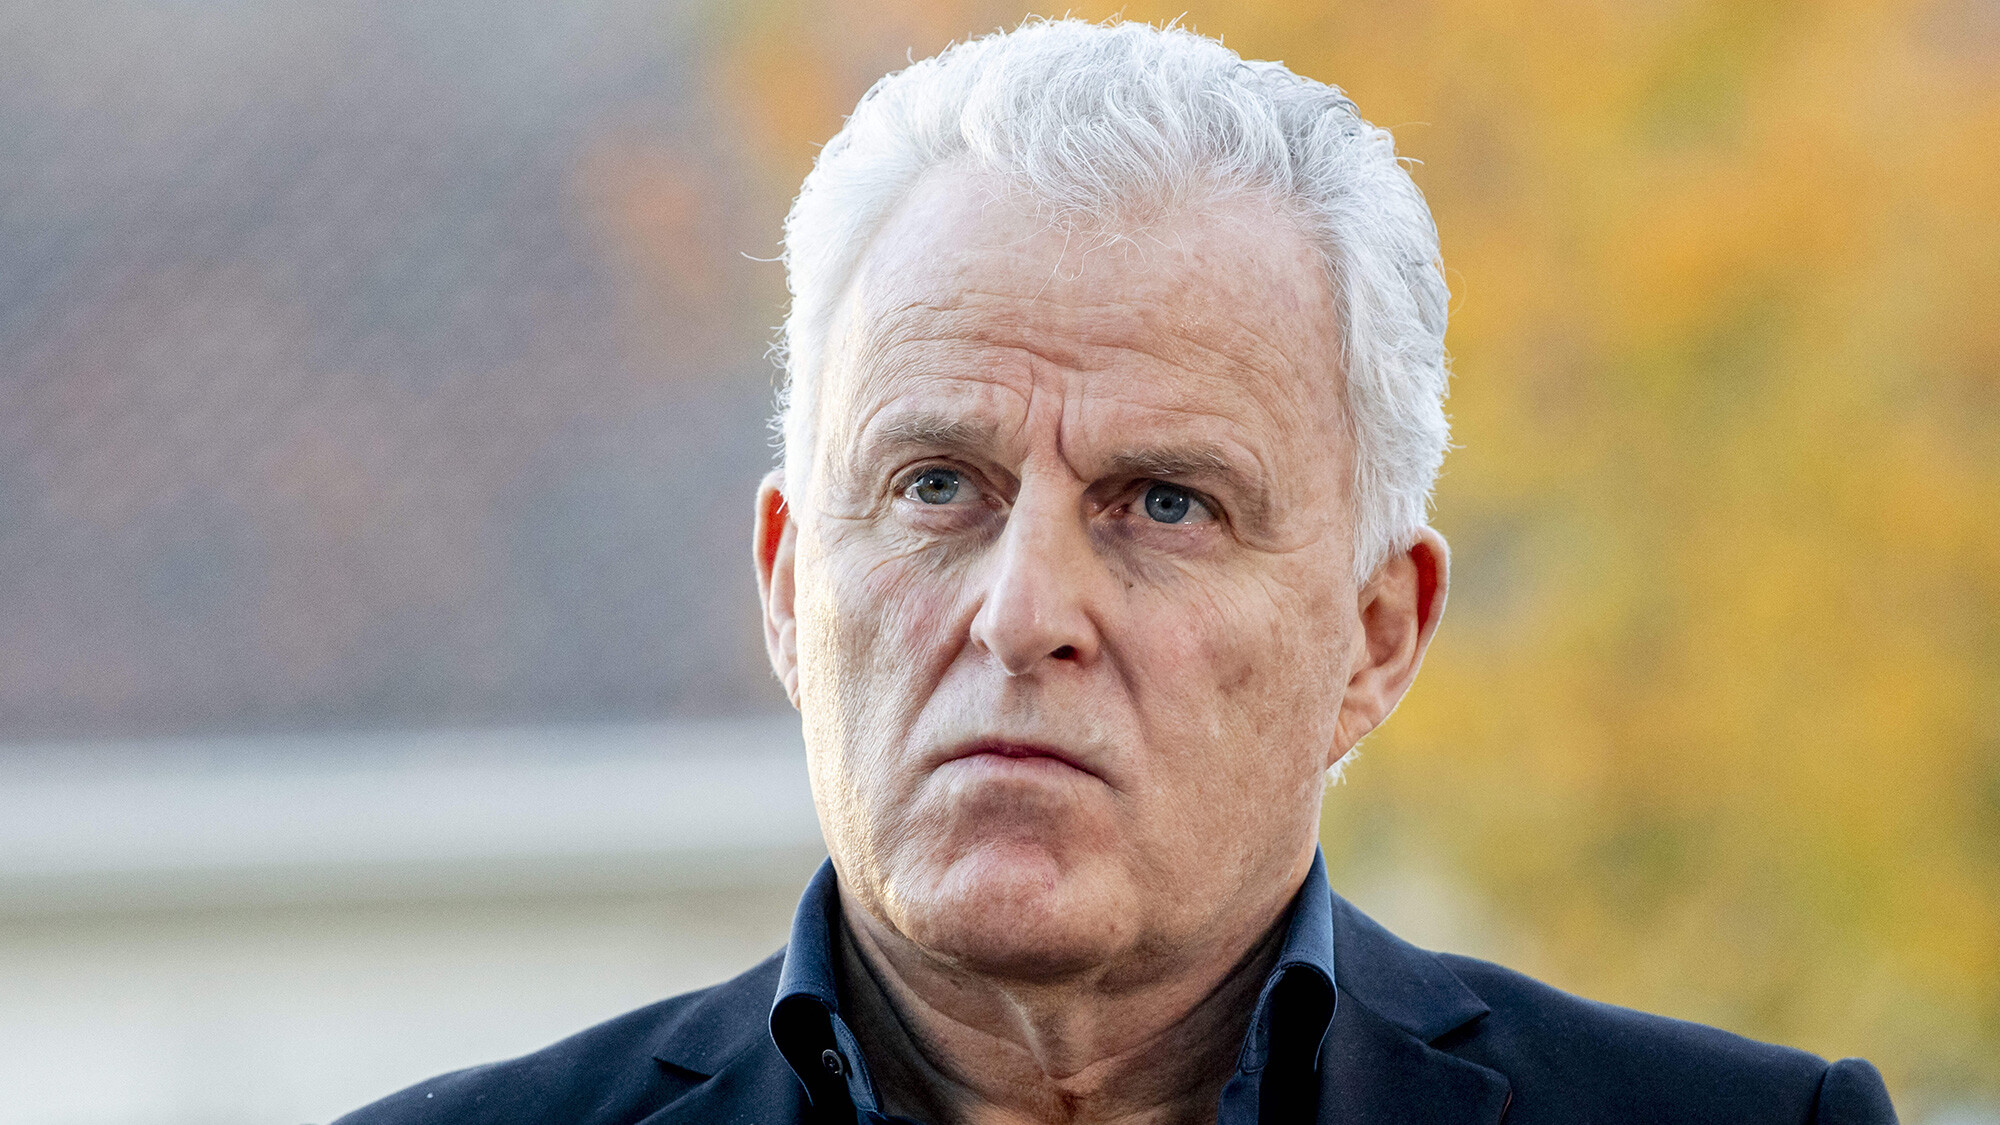 Famous Dutch crime journalist Peter R. de Vries dies in hospital after being shot in the street